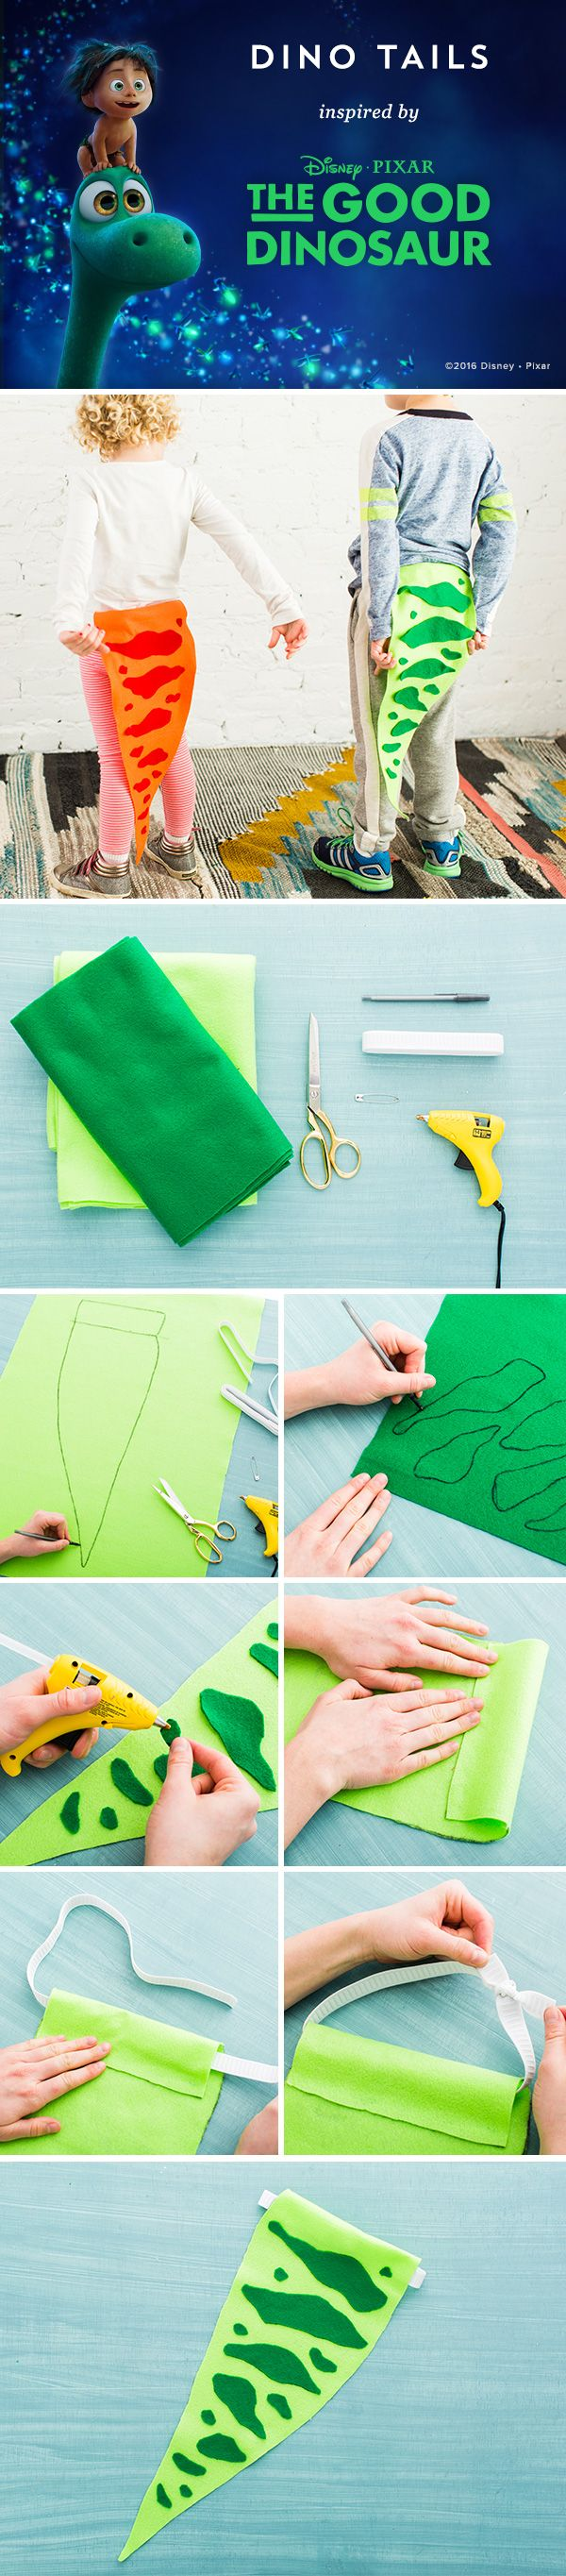 "Swing around in these colorful Dino Tails and celebrate Disney/Pixar's The Good Dinosaur! Draw the shape of a dinosaur tail on light green felt leaving 2"" at the top and cut out 2. Draw nebulous shapes on the dark green felt and cut out 3. Adhere them to the tail with hot glue 4. Fold top edge over and glue in place 5. Cut elastic strap, add a safety pin to the end, and pull through top of tail 6. Remove safety pin and tie elastic edges together"